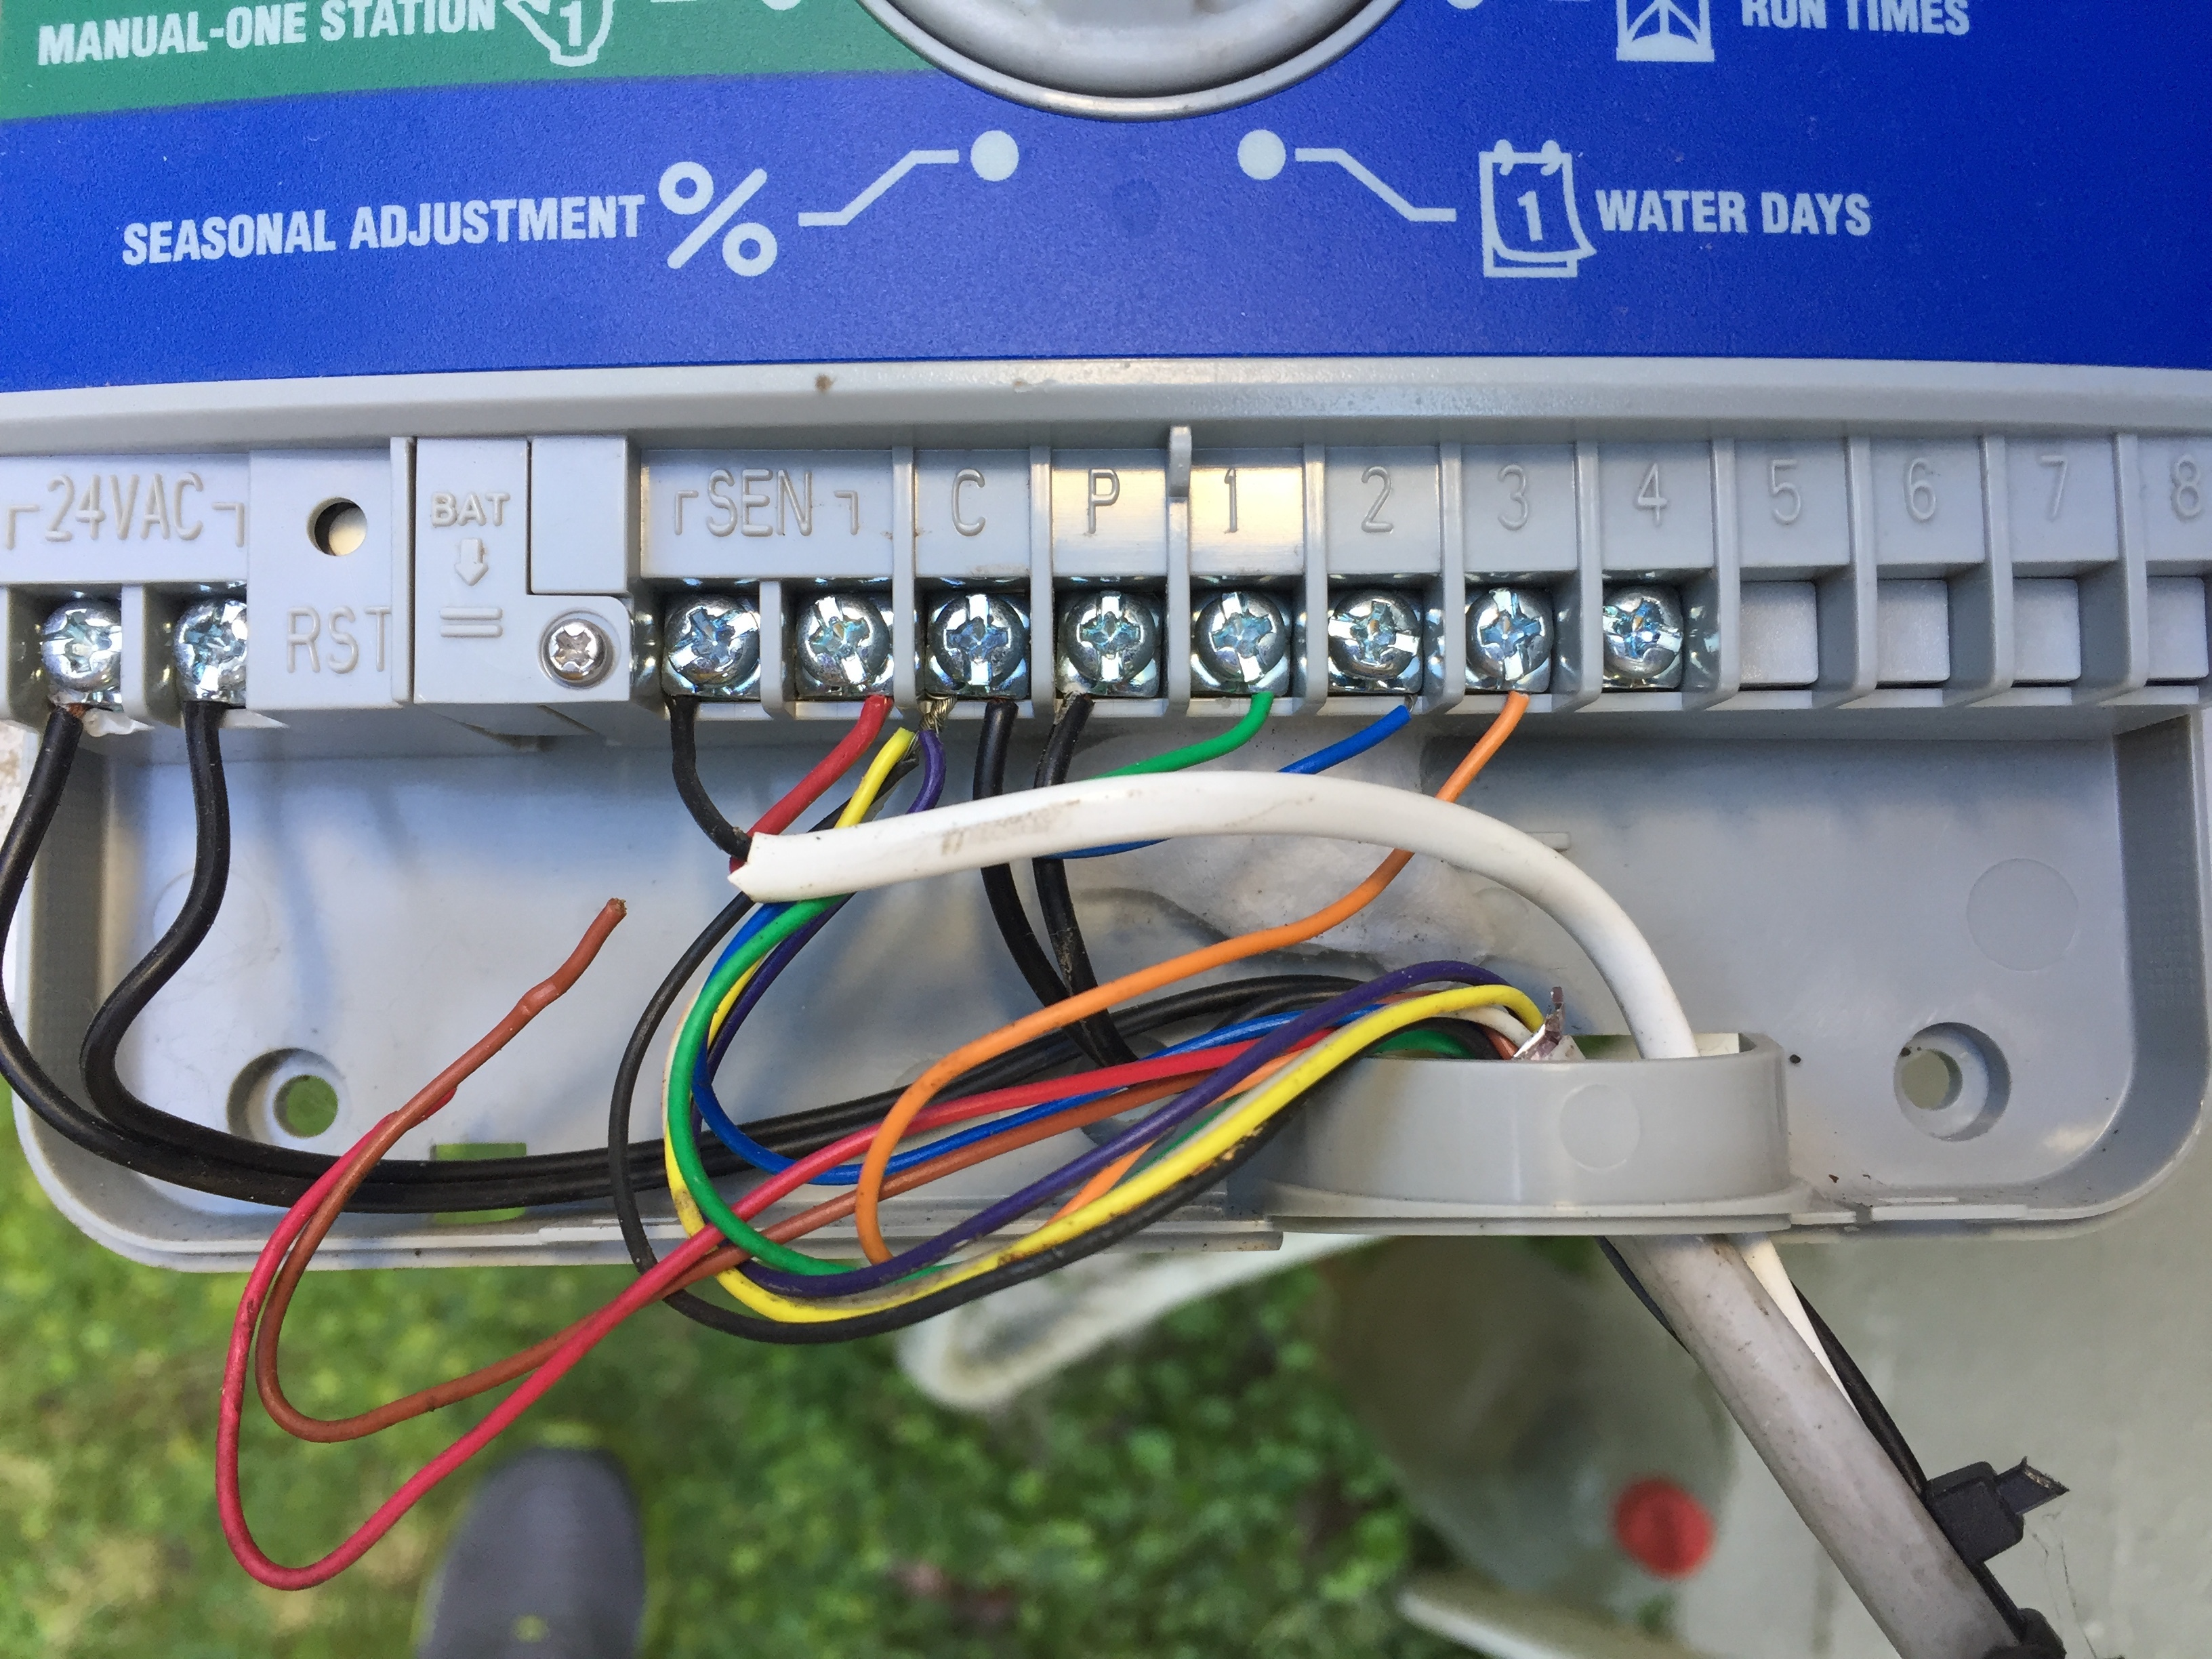 wiring support support rachio community, electrical wiring, electrical wiring support